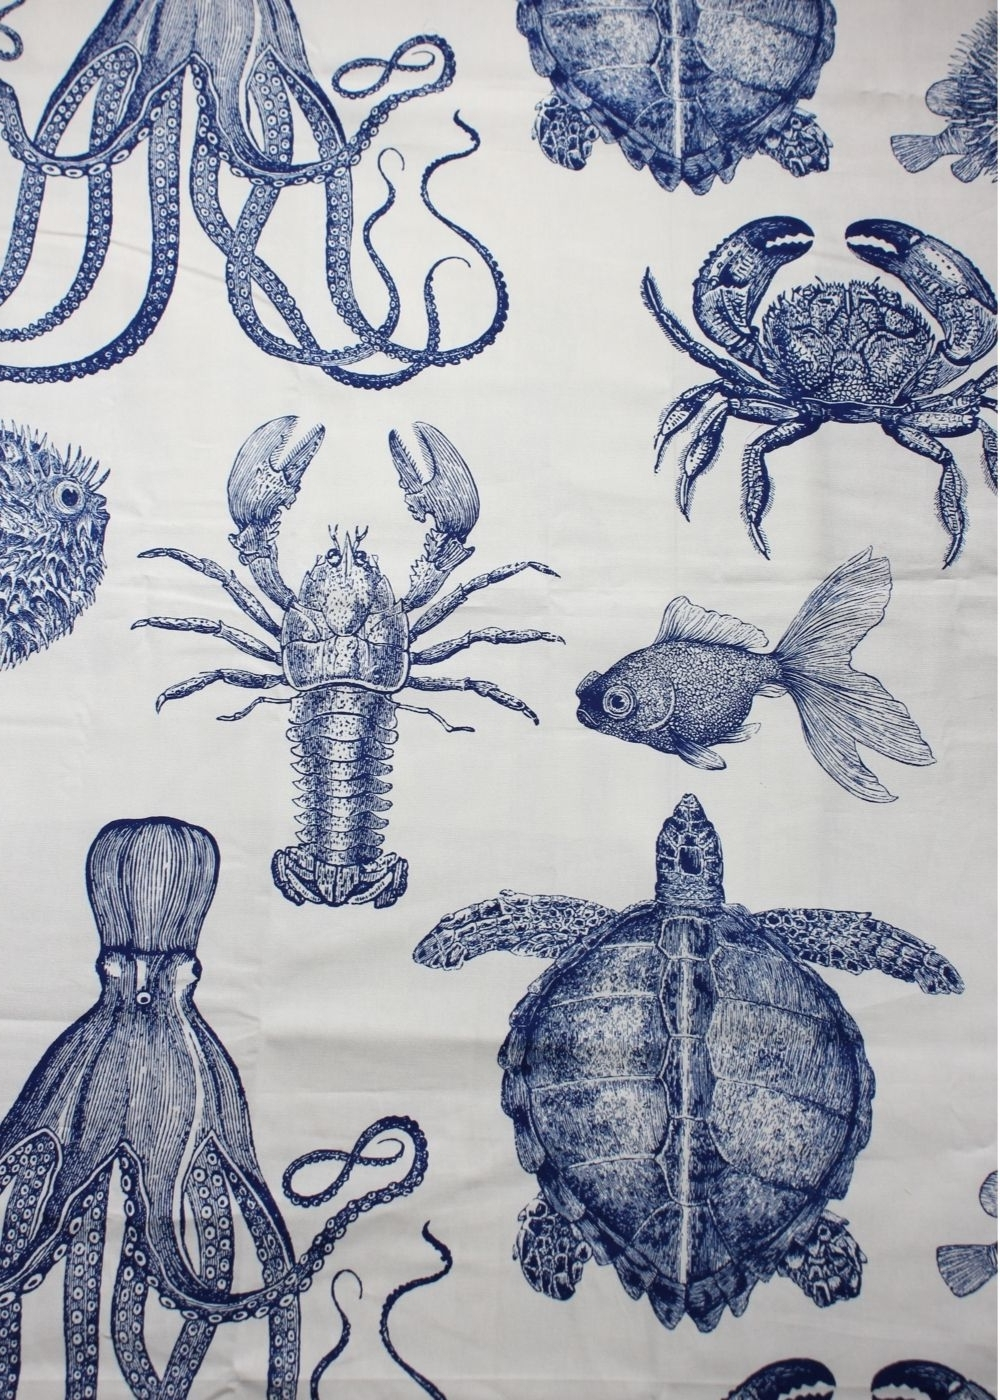 Sea Life Wall Art Throughout Famous Diy Sea Life Wall Art – Broken Wall Art Gets A New Life With This (View 8 of 15)